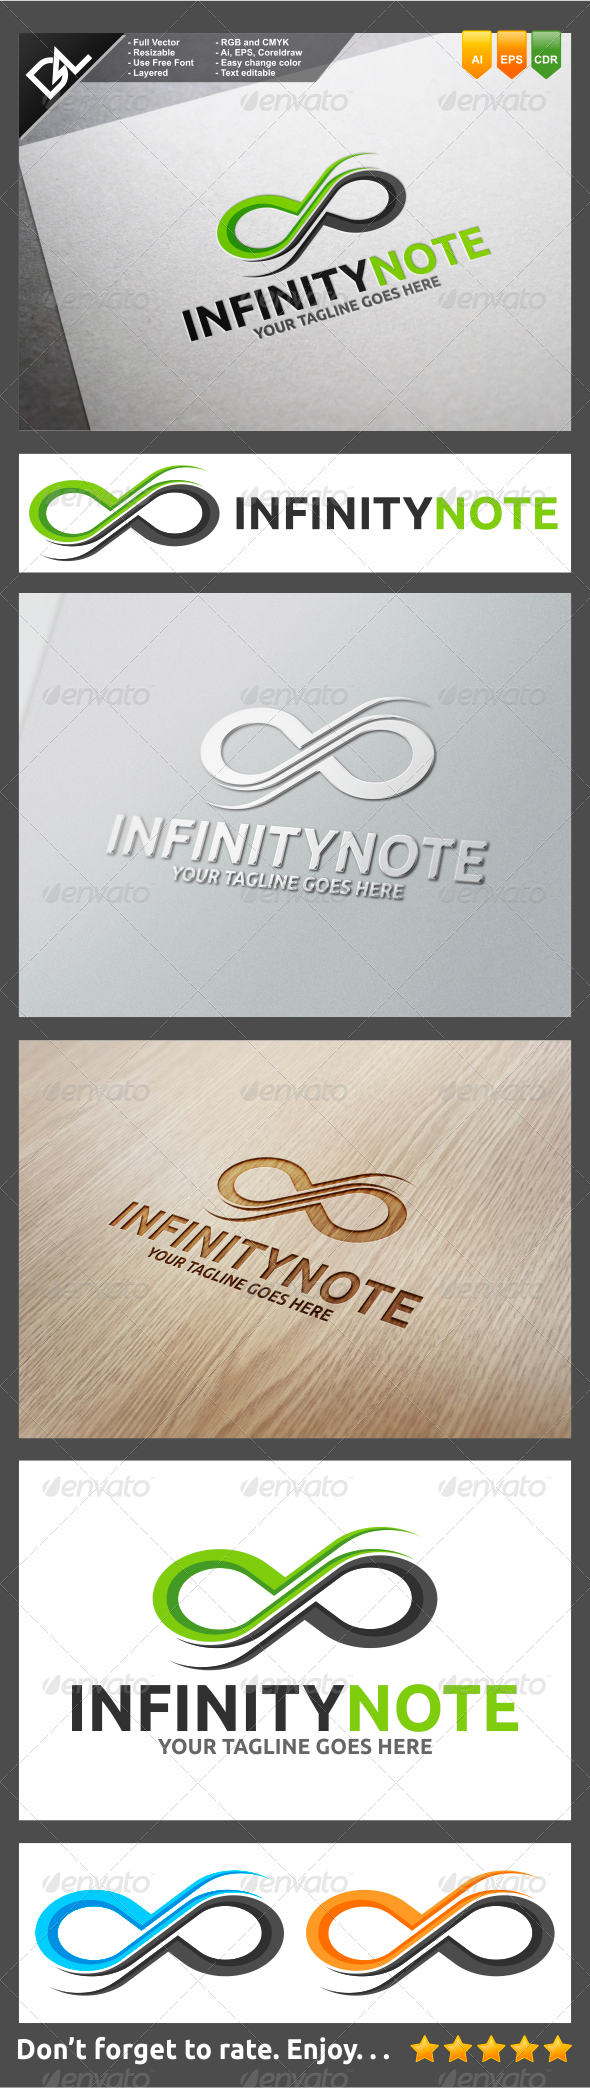 Infinity Note